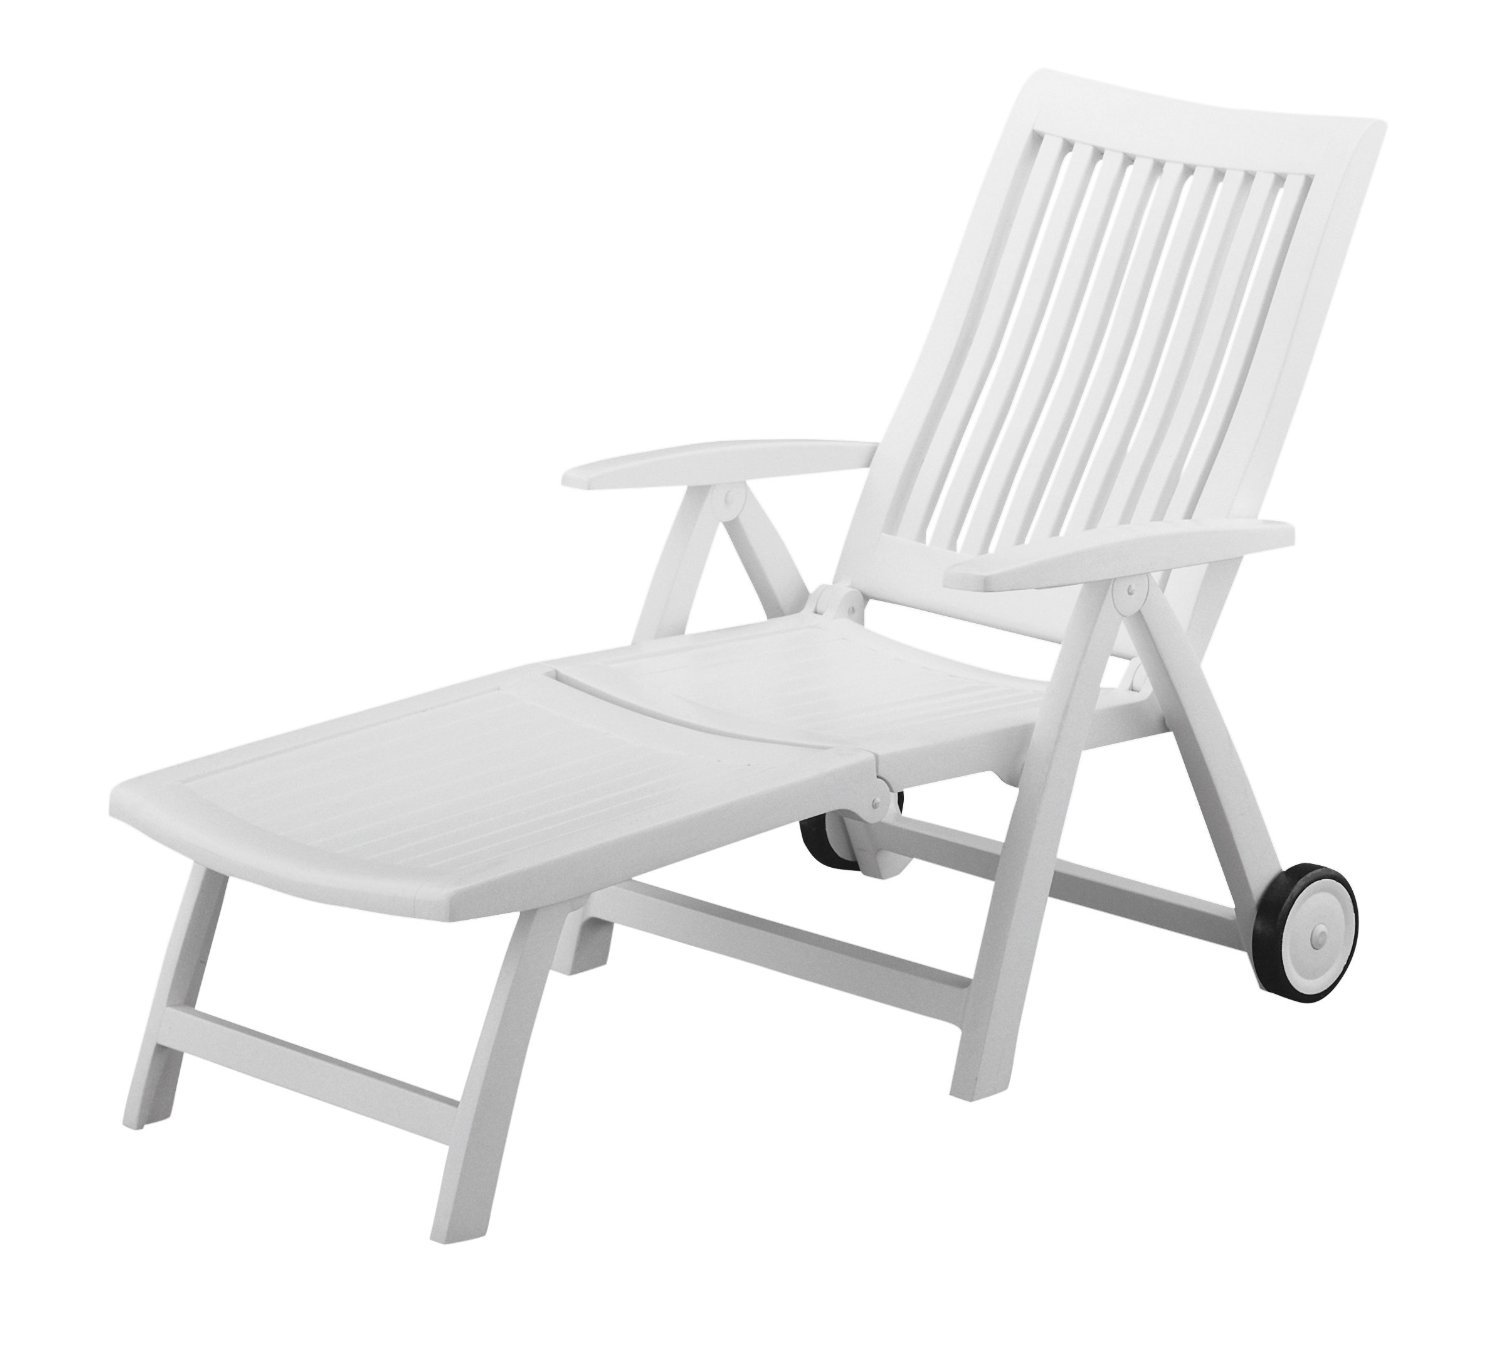 oversized the chair of beach lounge style fixed footrest folding furniture with concept picture best lawn and